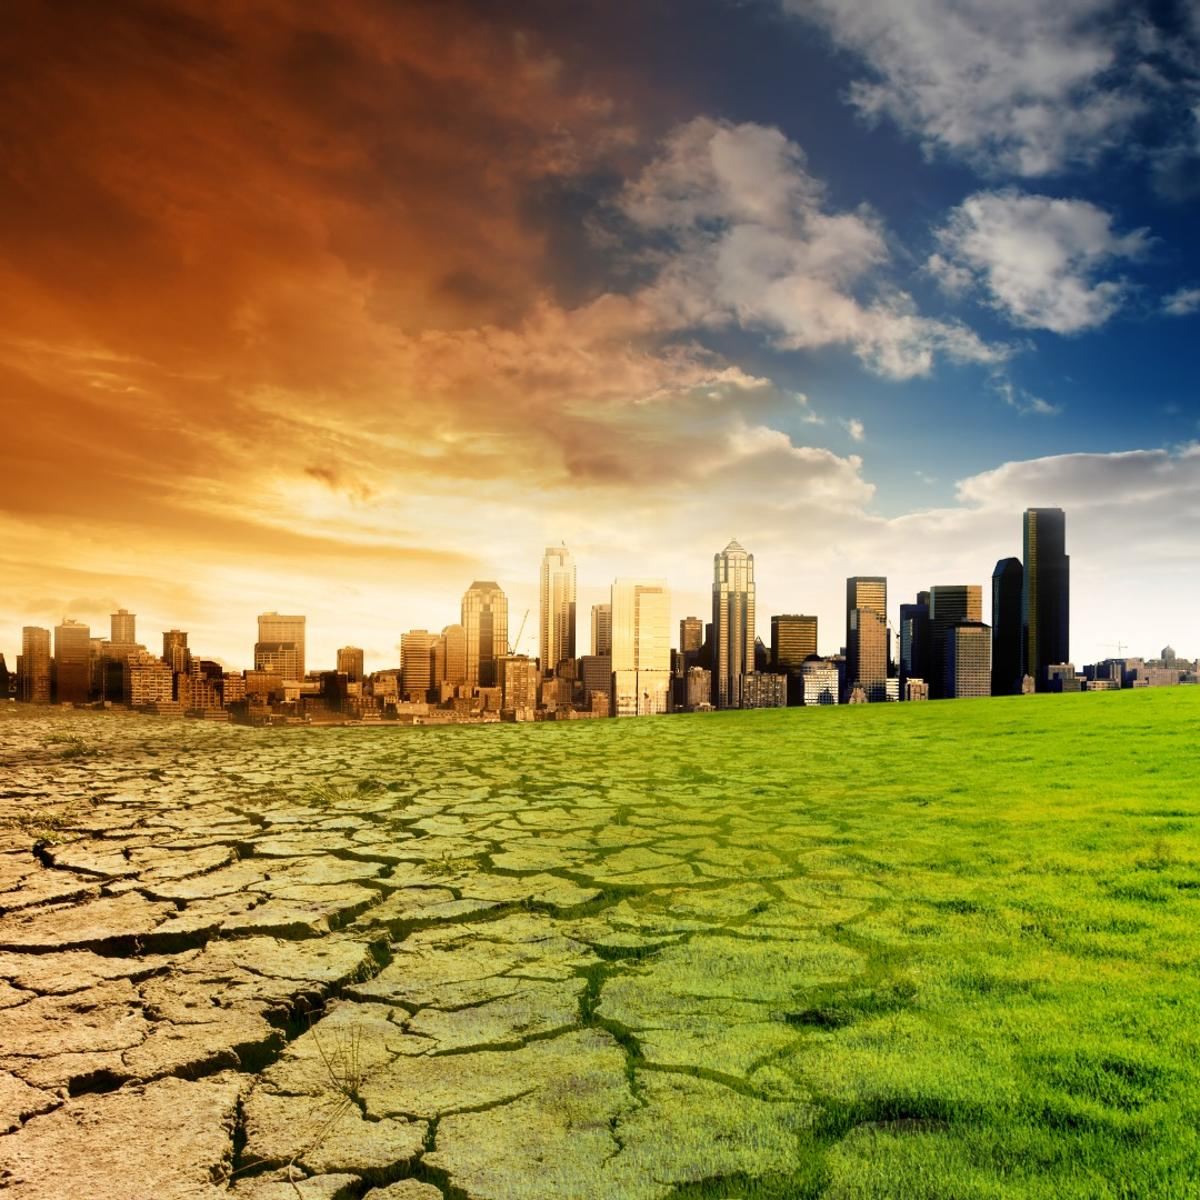 A new UN report warns of a climate apartheid scenario, where the richpay to escape the worst effectsof climate change